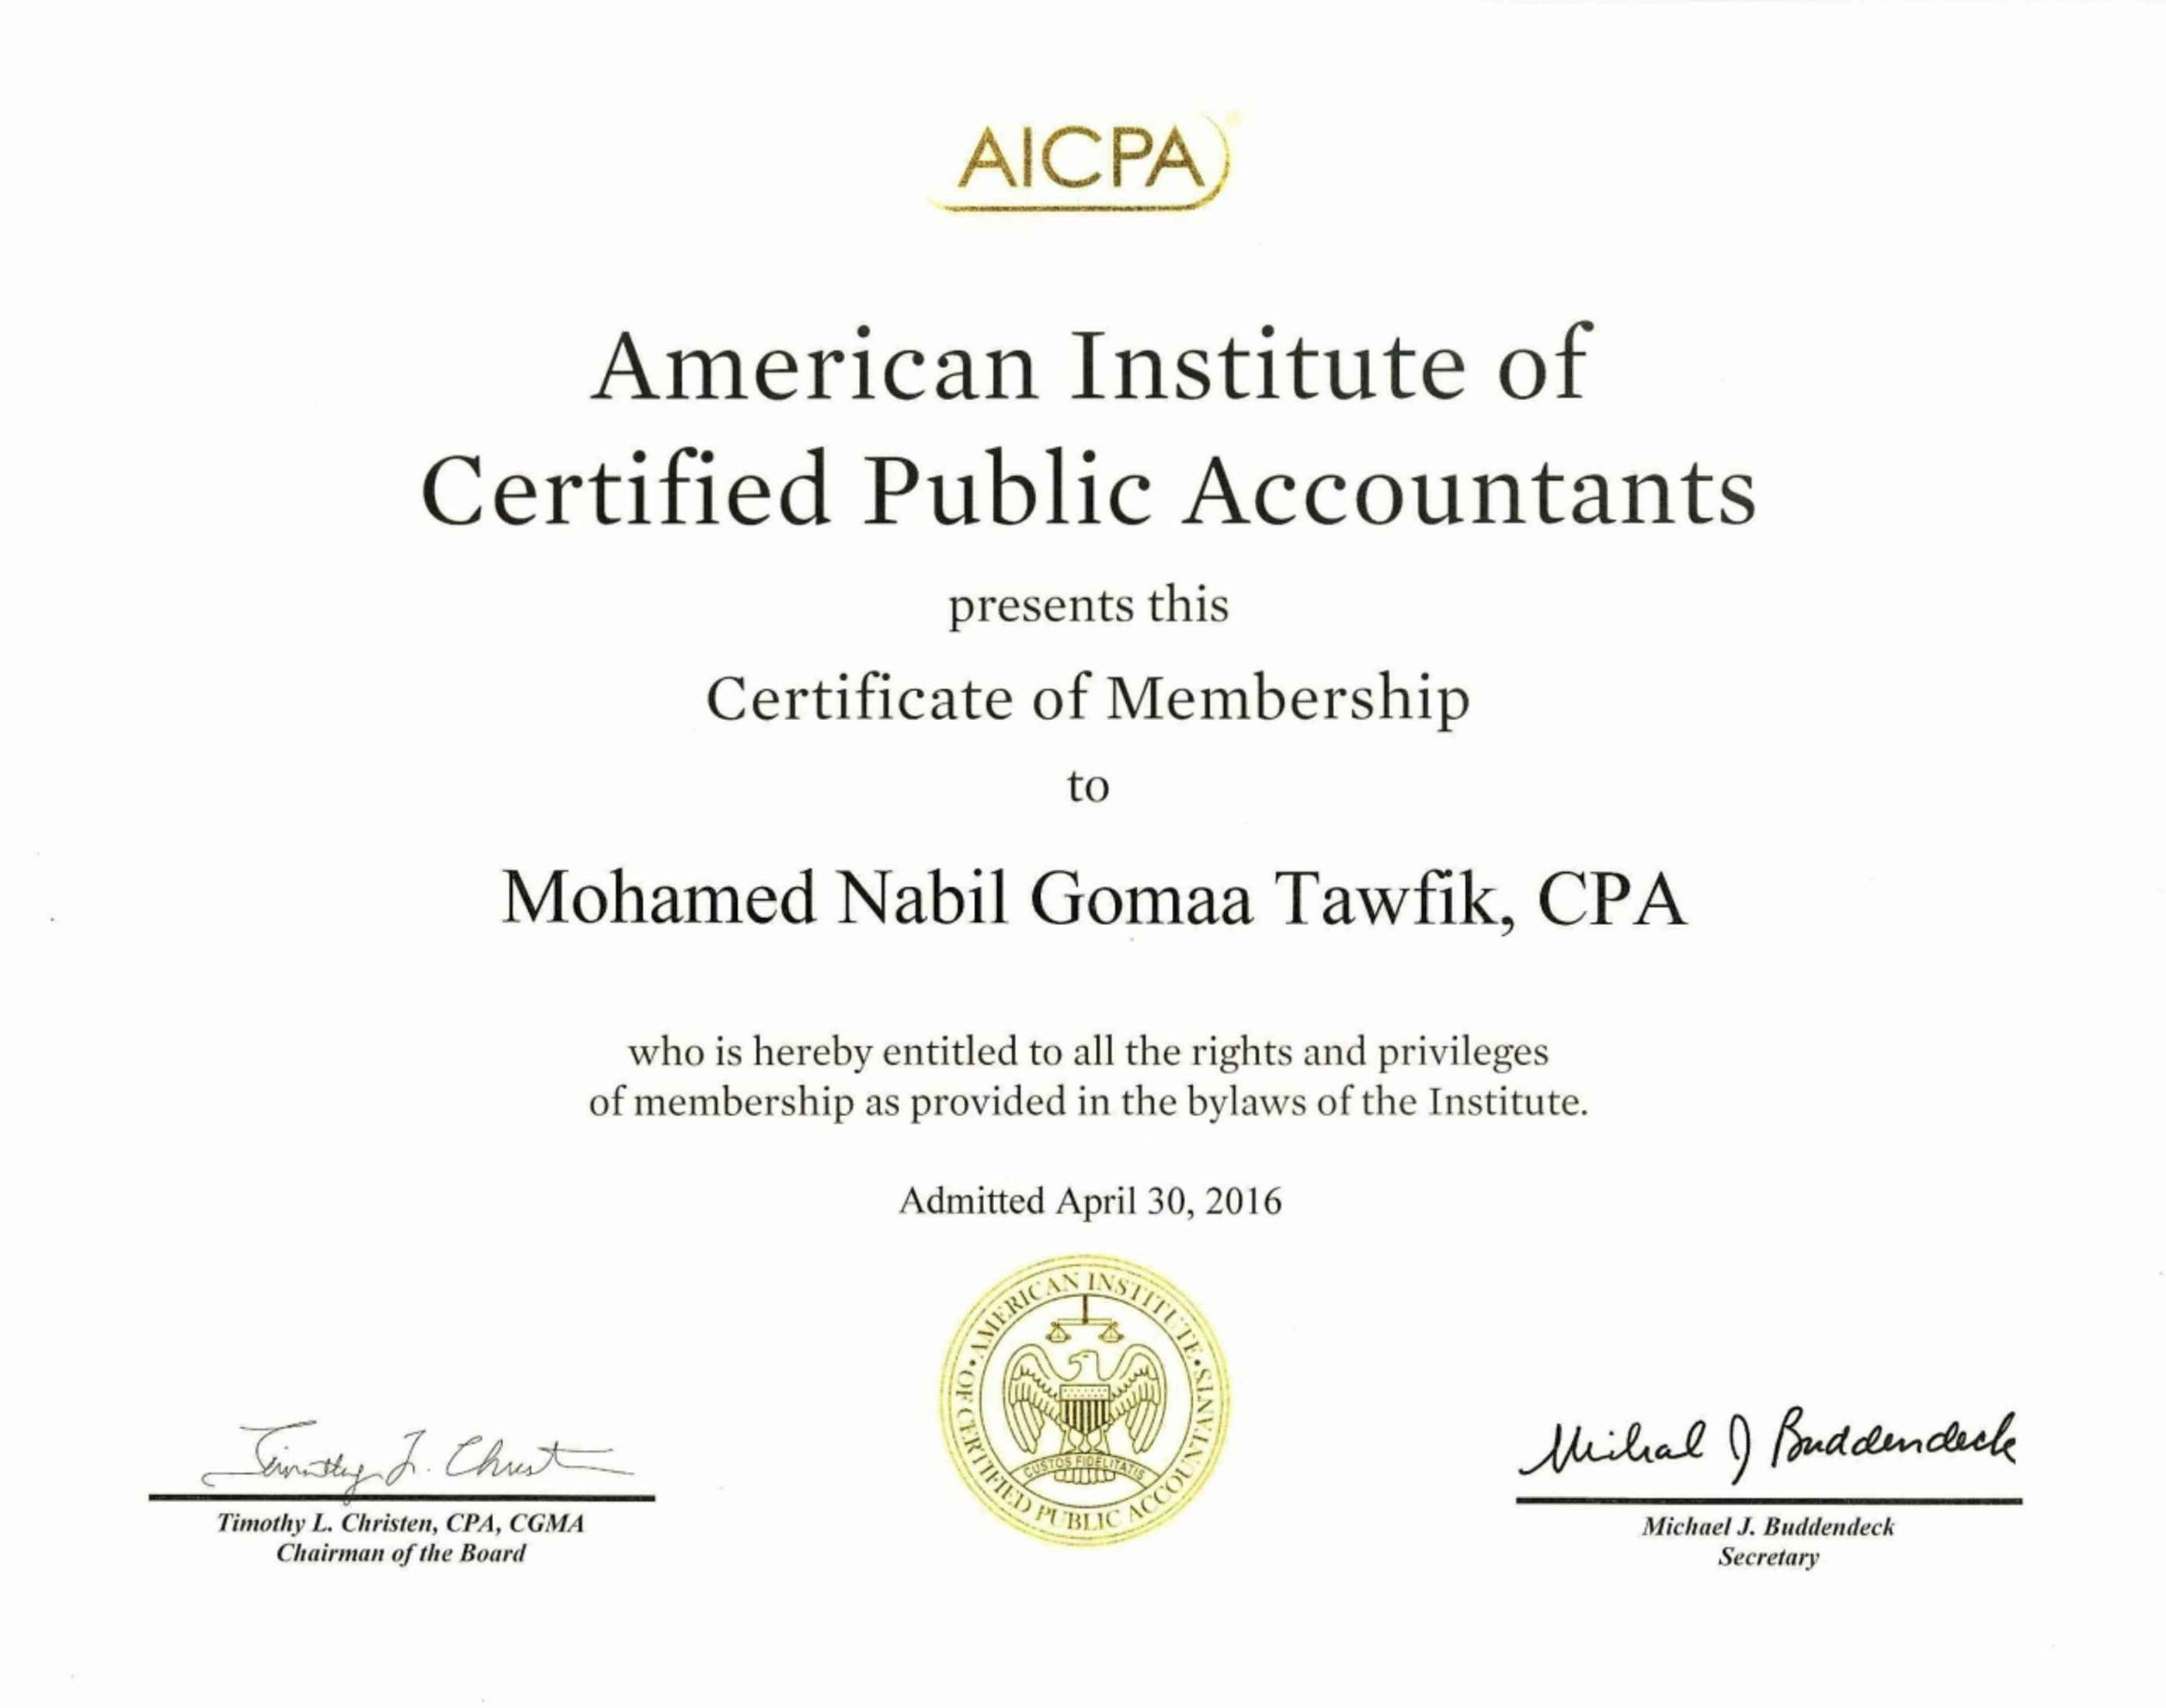 Mohamed Tawfik Cpa Cma Ctp Csca Bayt